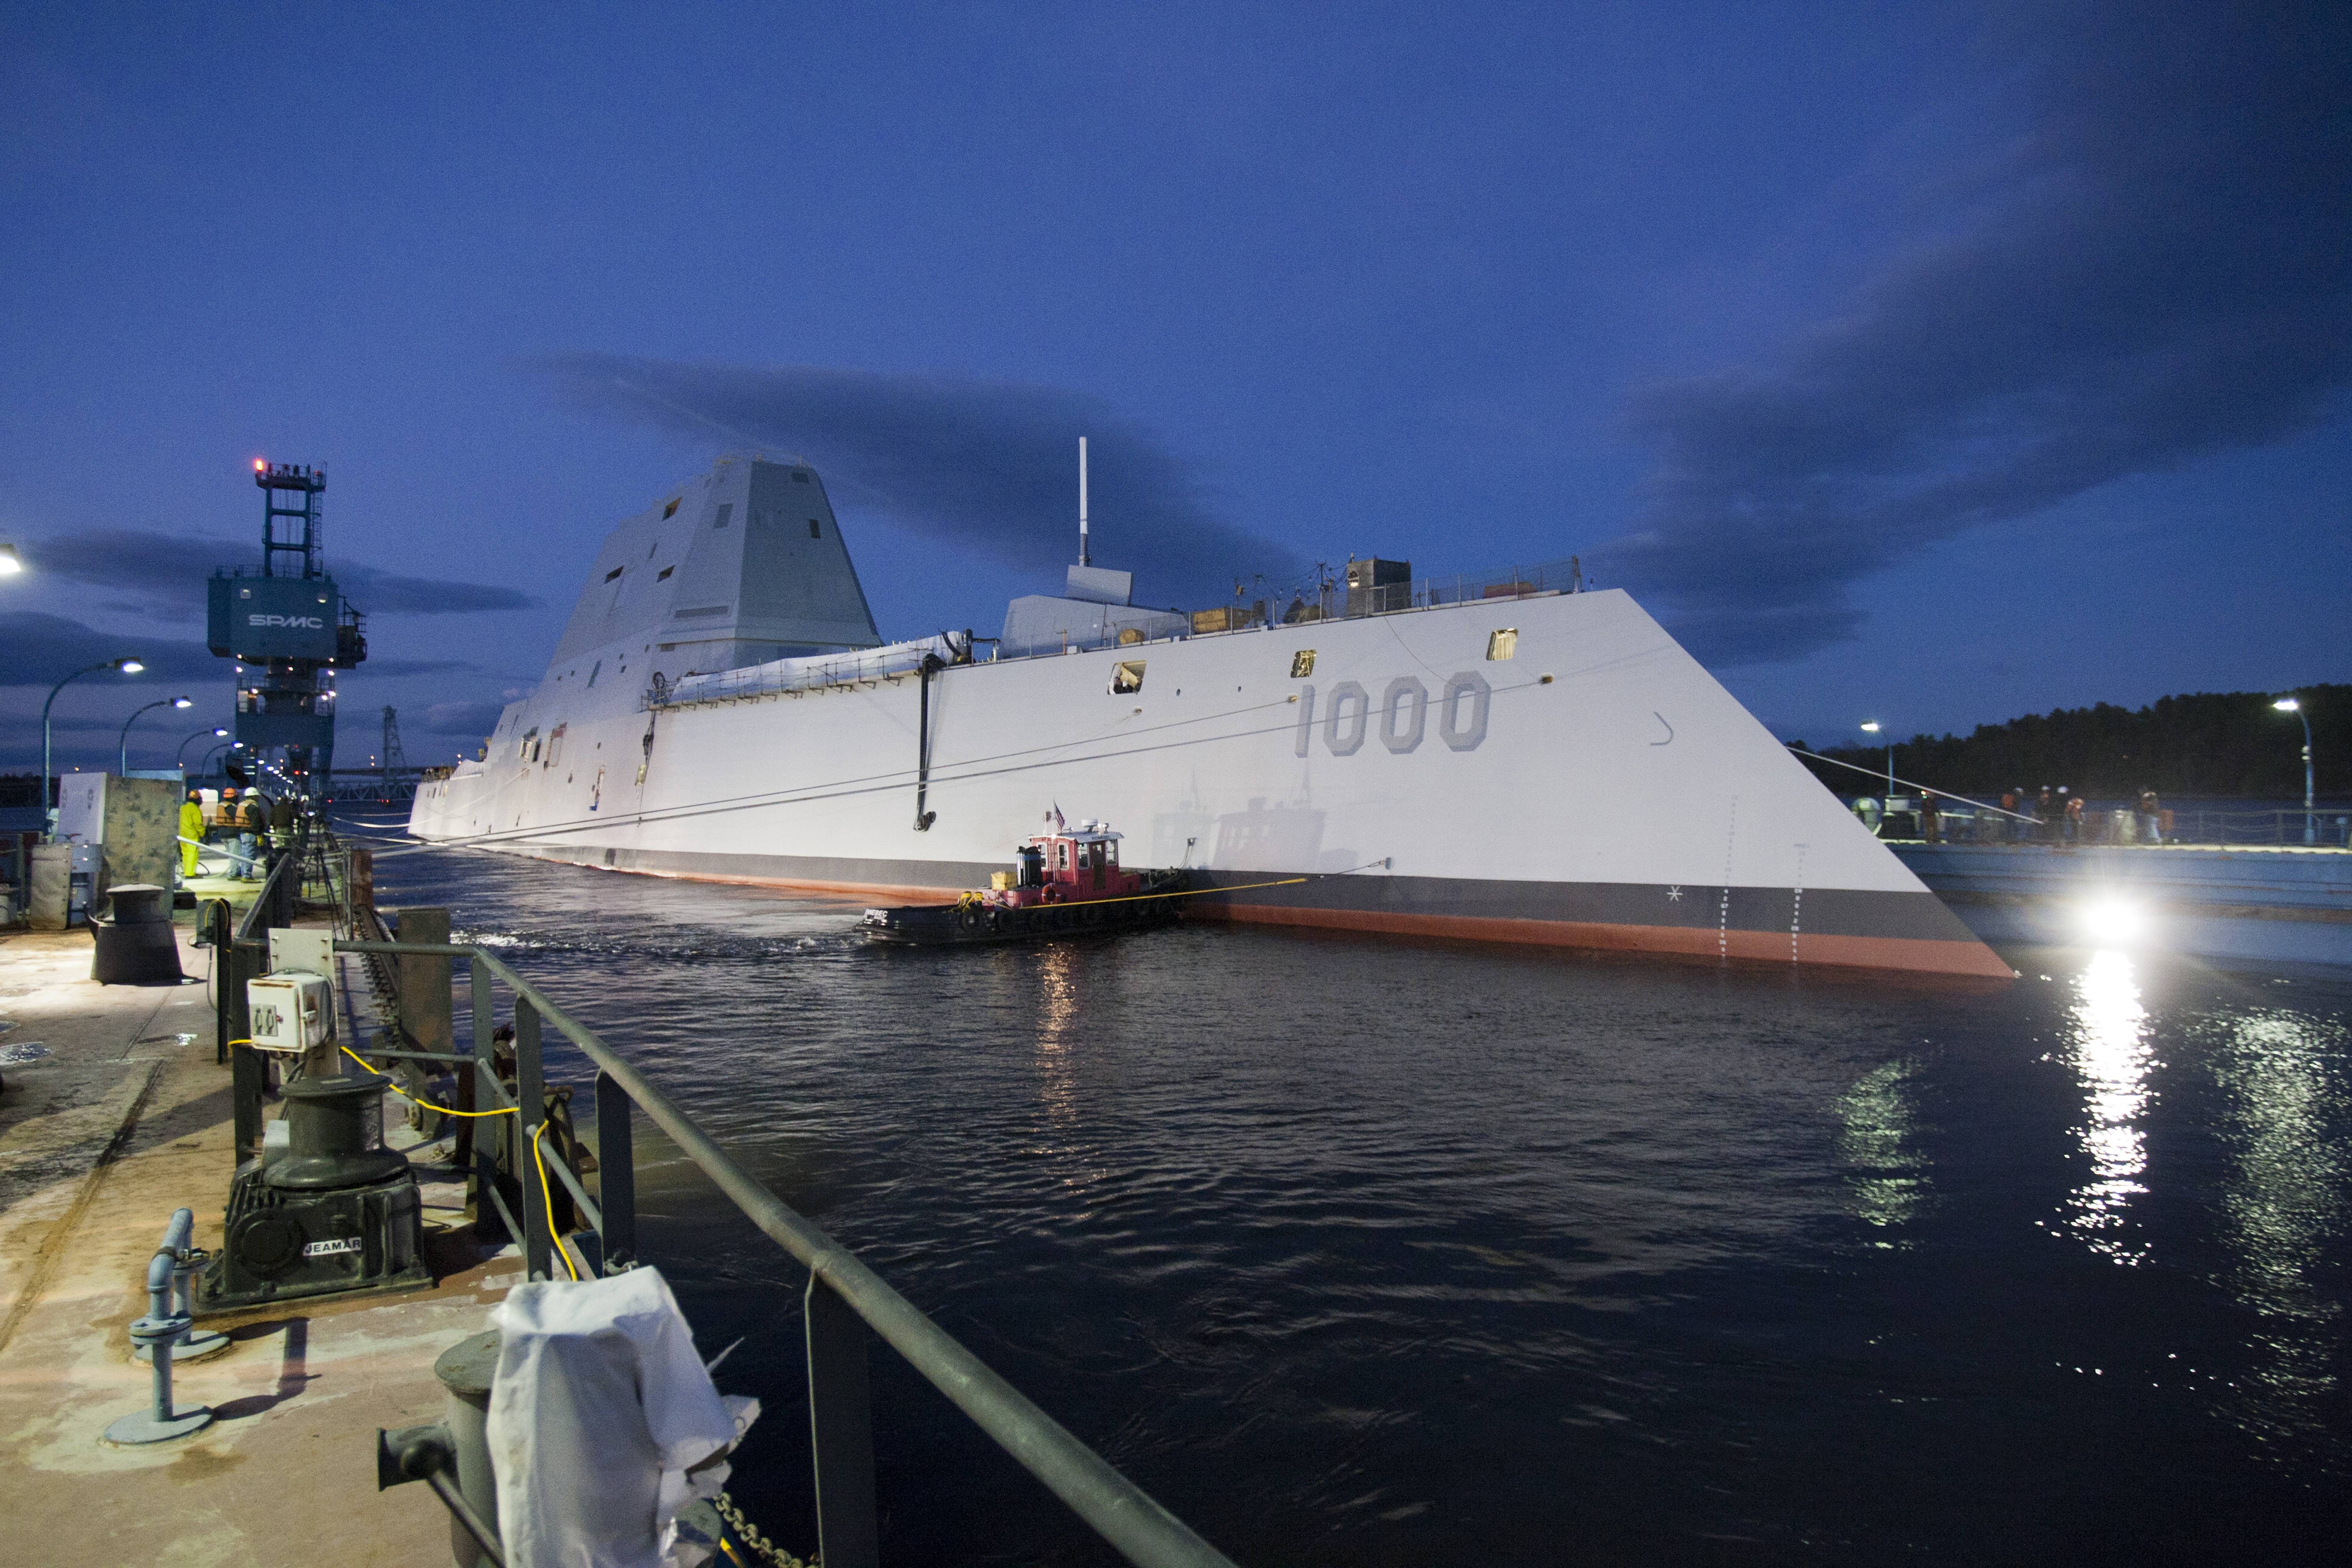 The Zumwalt-class guided-missile destroyer DDG 1000 is floated out of dry dock at the General Dynamics Bath Iron Works shipyard. The ship that bears his name, the first of three Zumwalt-class destroyers, was christened by Zumwalt's two daughters on Saturday.